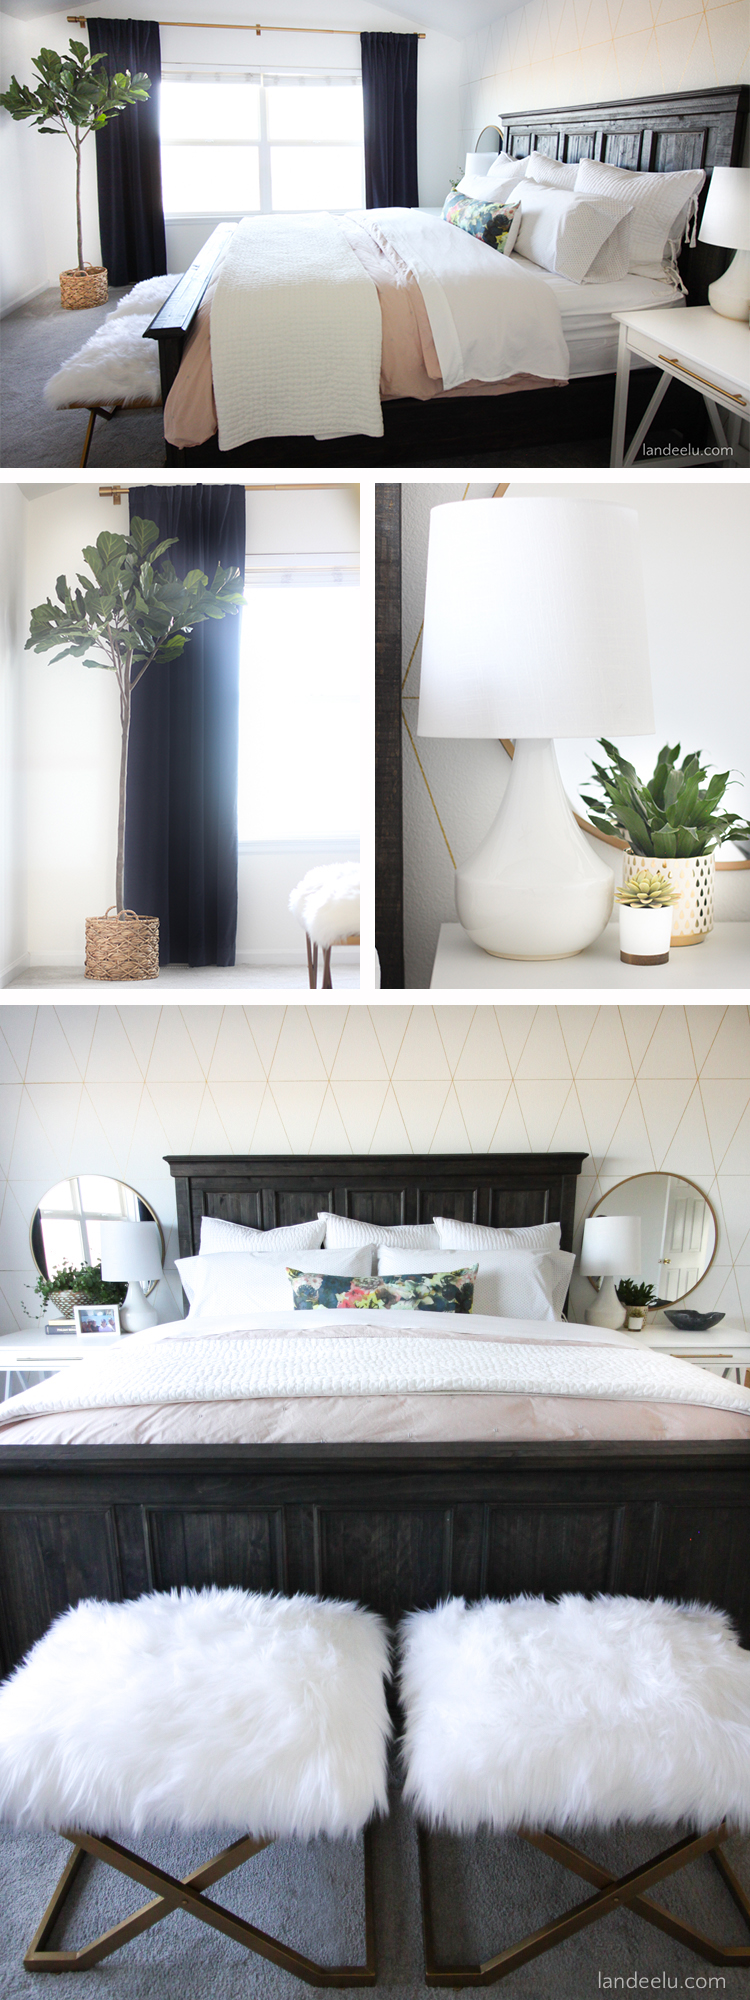 Love these master bedroom ideas! So fresh and happy!